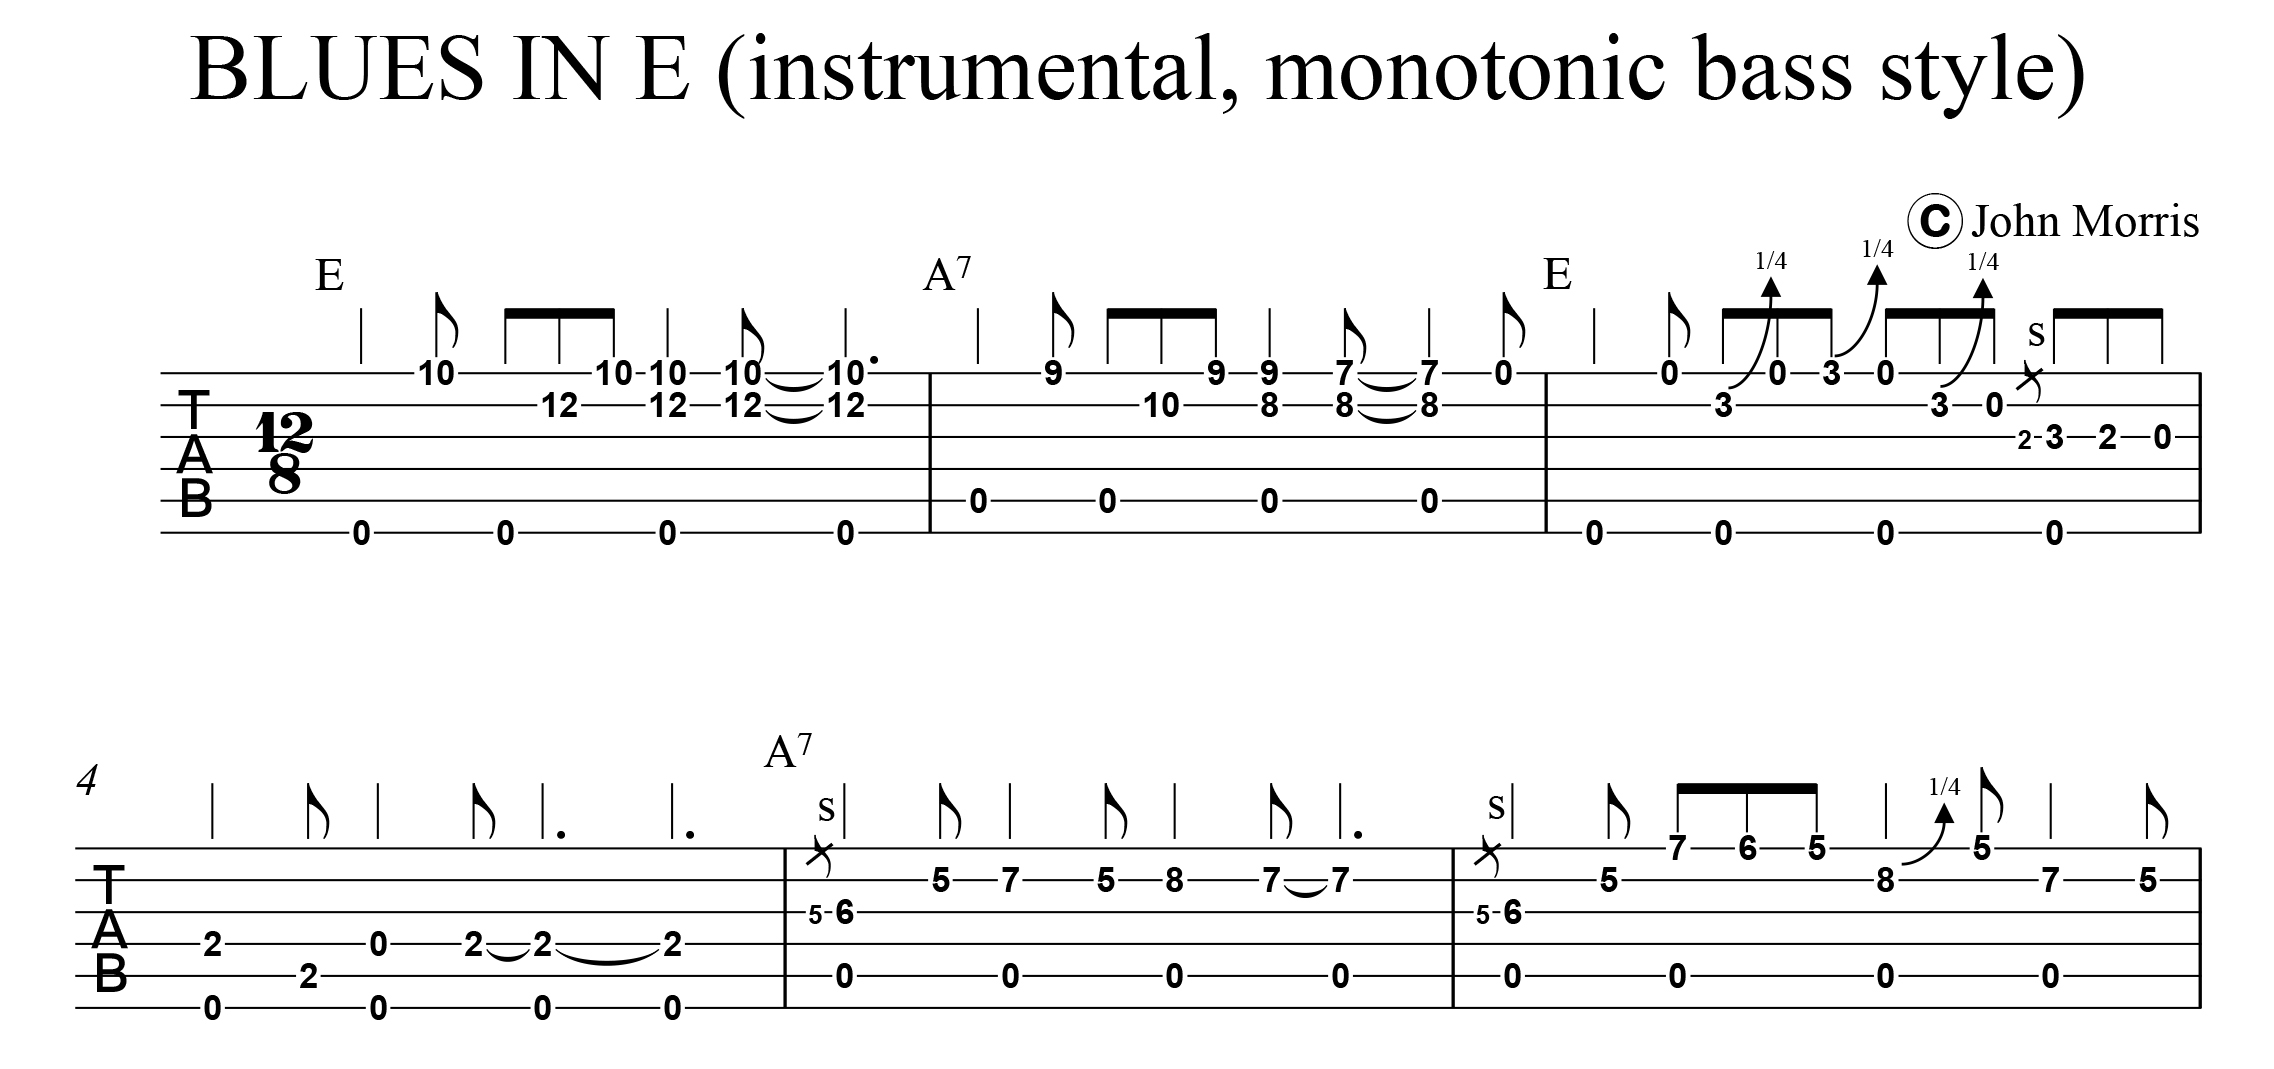 Monotonic Bass Style Blues In E